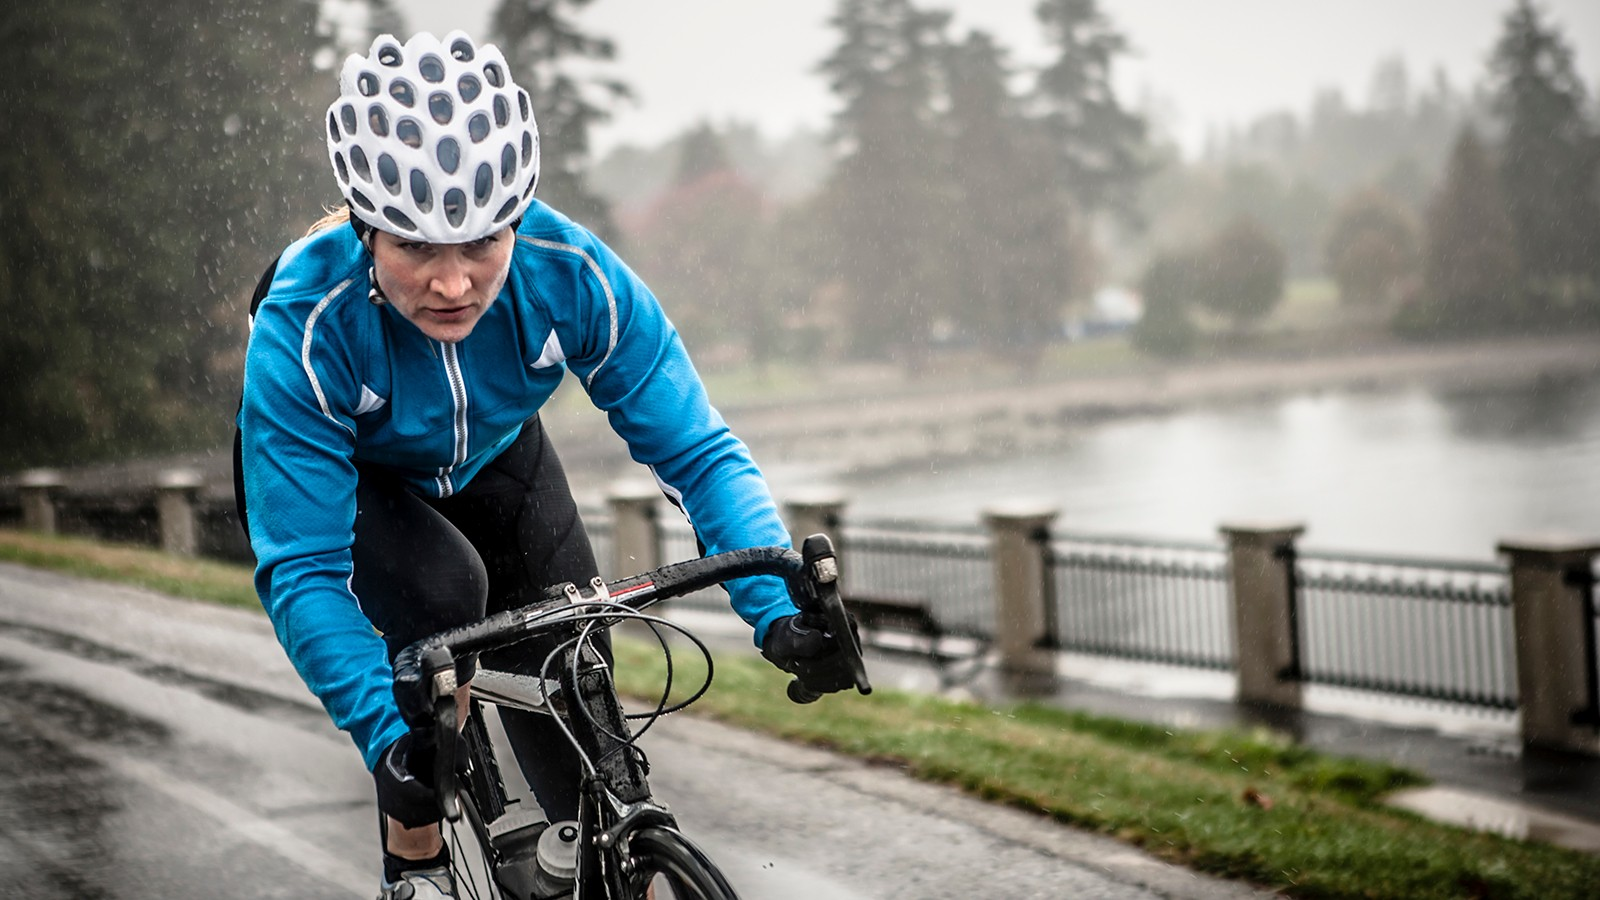 Adjust your clothing and riding style to stay safe in the rain